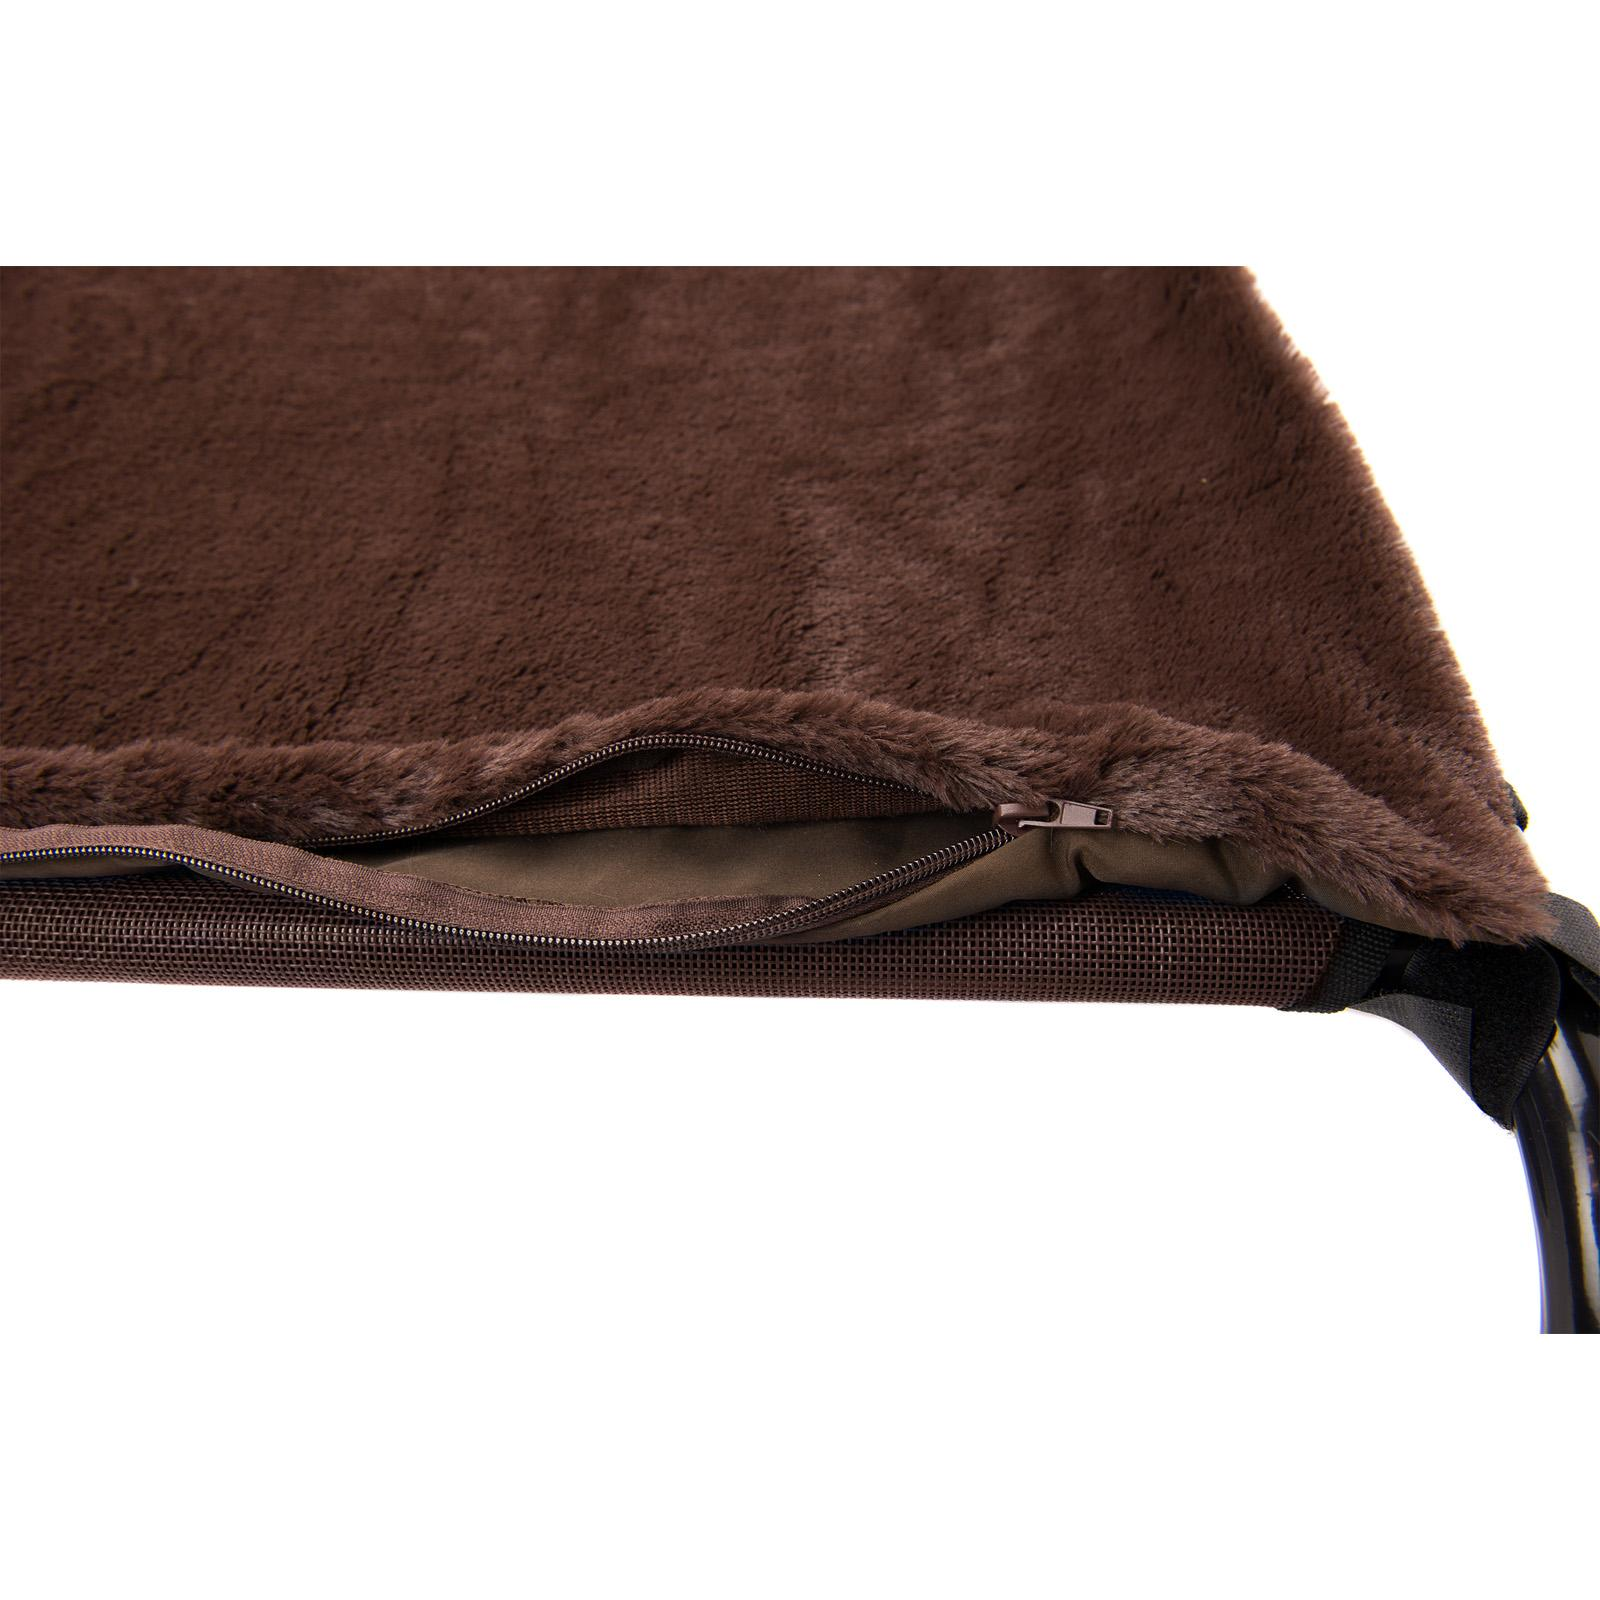 FurHaven Plush Blanket Accessory for Elevated Pet Cot 5636601 Size: Small, Color: Espresso